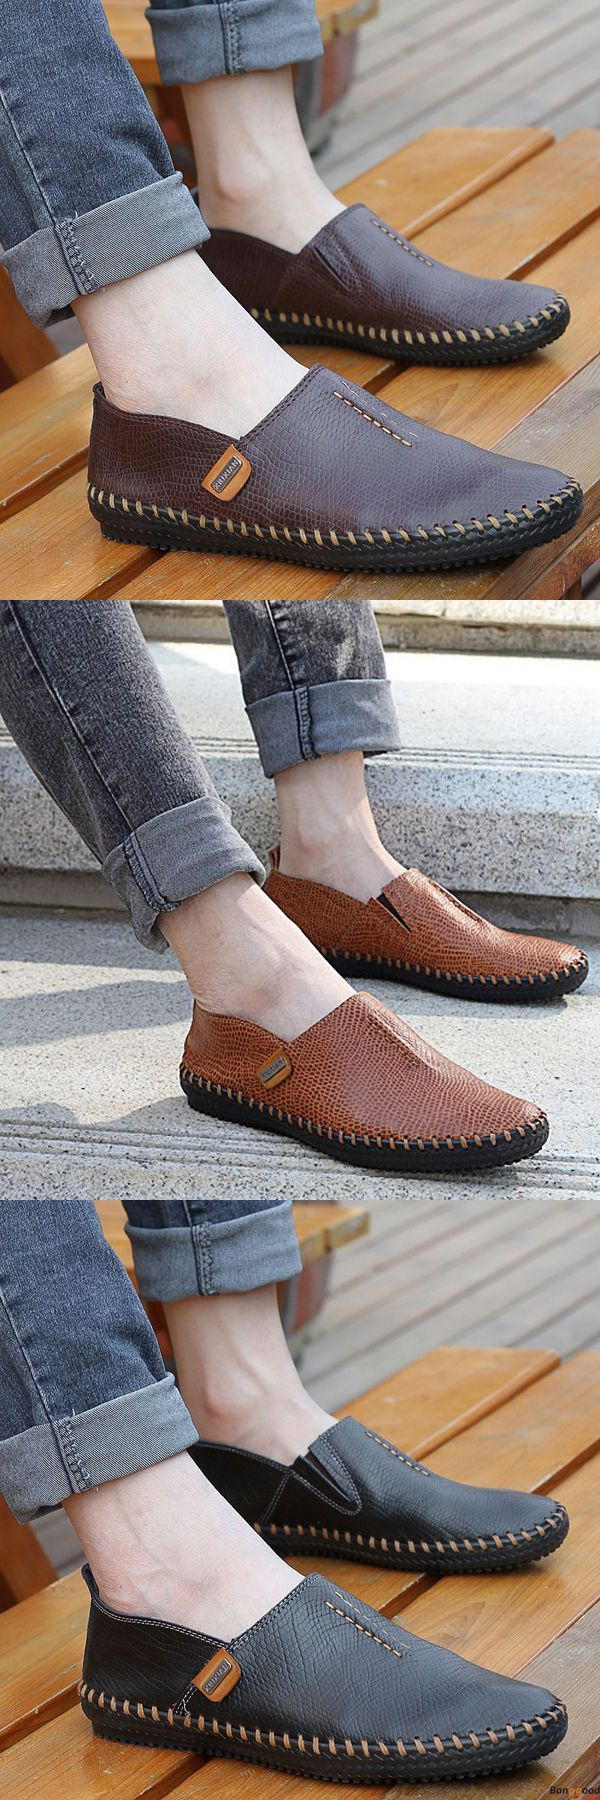 US$45.53+ Free Shipping. 3 colors available. Men loafers, casual comfortable shoes,  oxford shoes, boots, Fashion and chic, casual shoes, men's flats, oxford boots,leather short boots,loafers, casual oxford shoes,slip on  men's style, chic style, fashion style.  Shop at banggood with super affordable price. #men'sshoes#men'sstyle#chic#style#fashion#style#wintershoes#casual#shoes#casualshoes#boots#oxfordshoes#loafers#slipon#flats